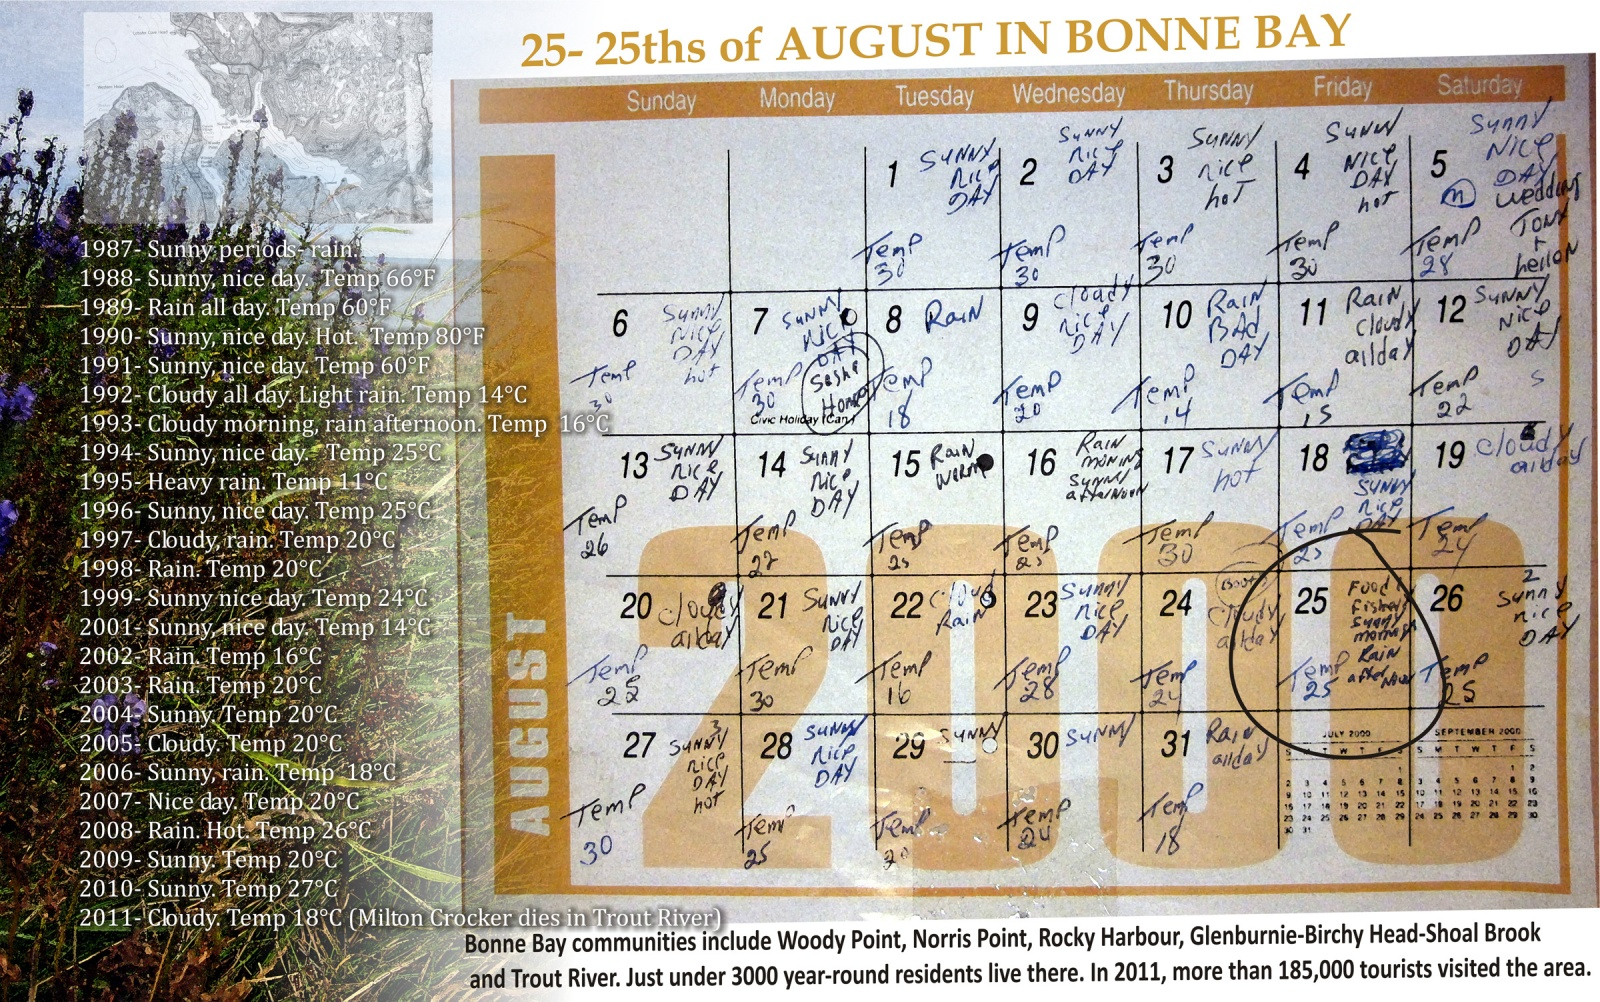 25- 25ths of August in Bonne Bay